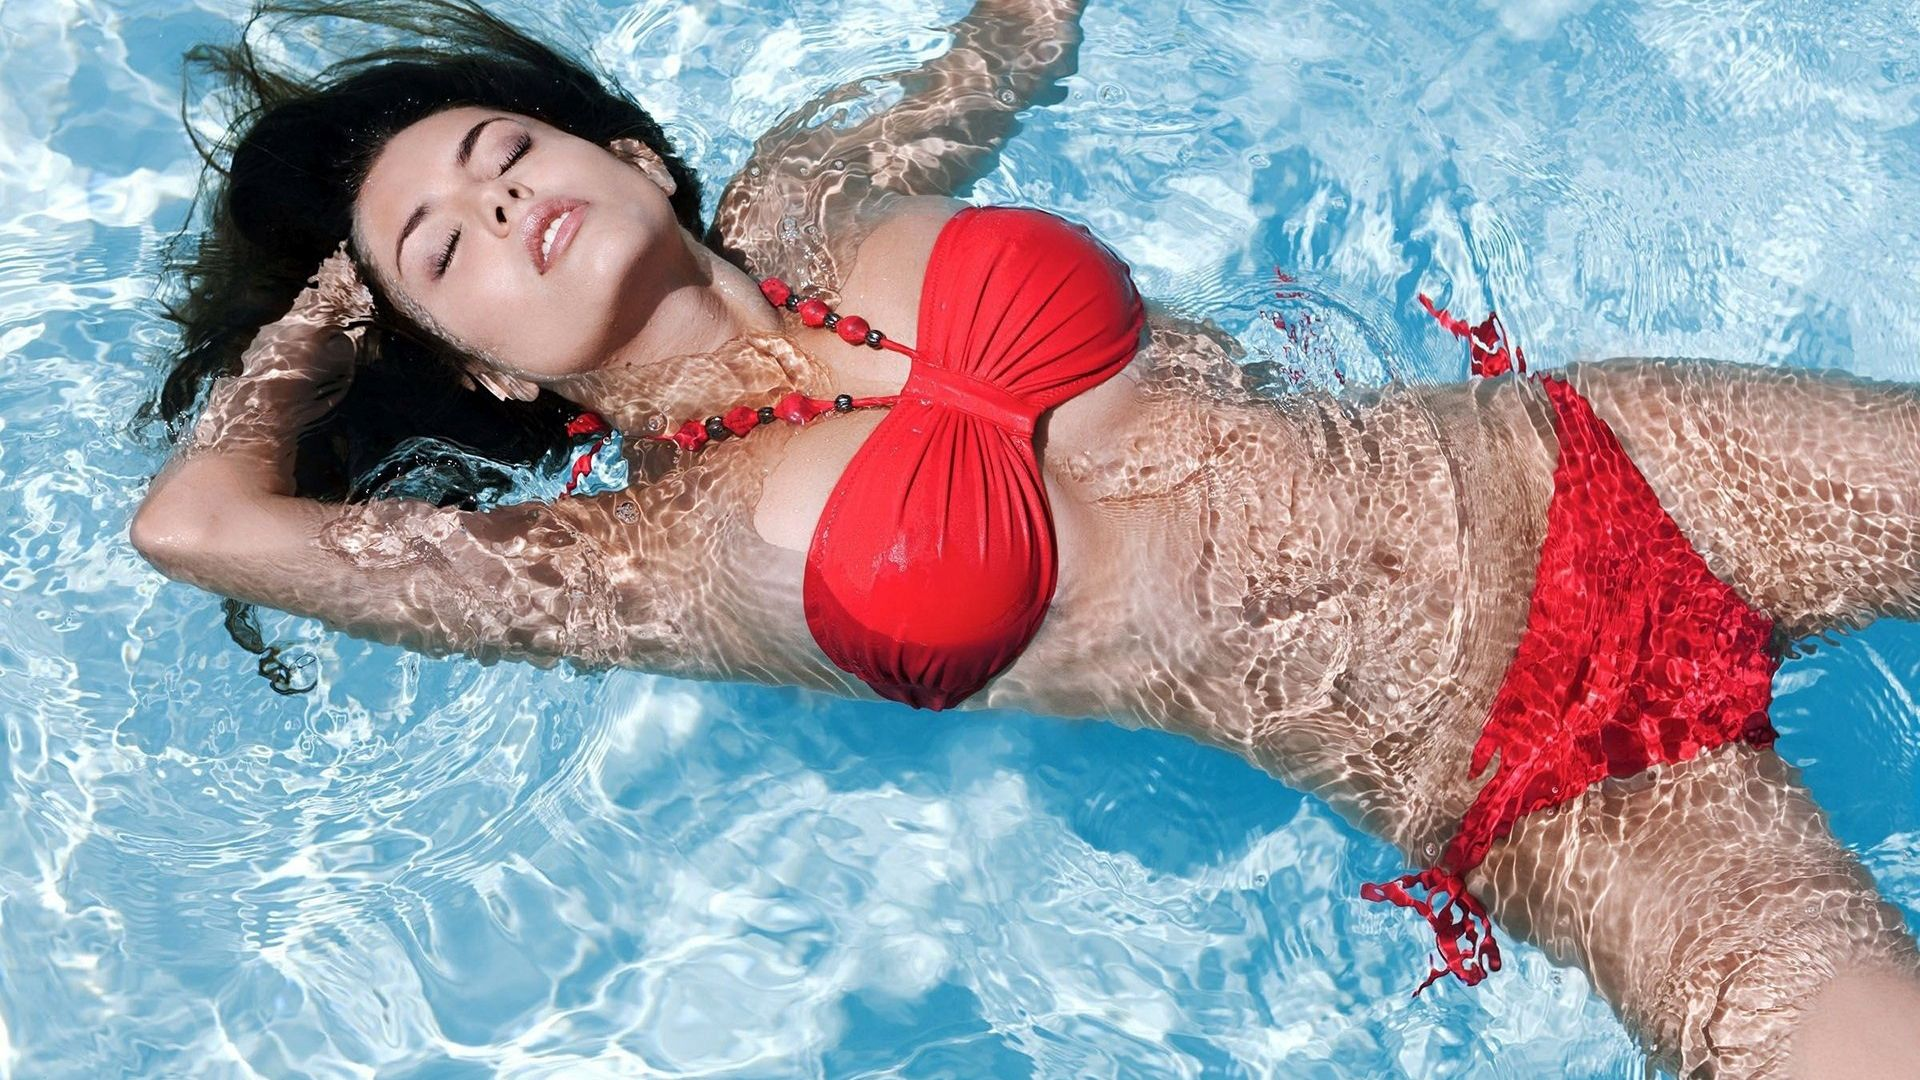 Wallpaper Sexy brunette in swimming pool